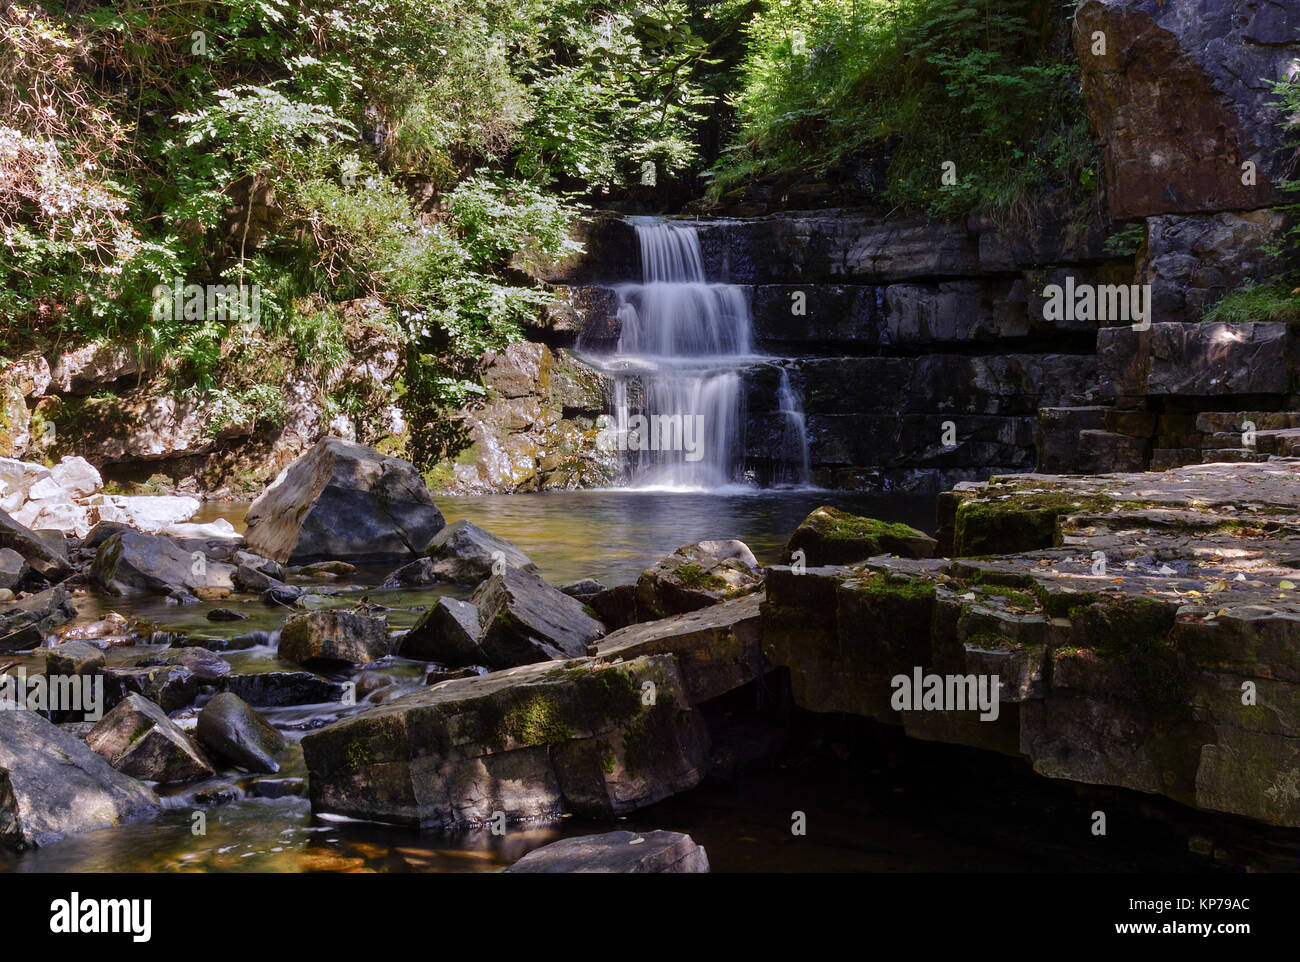 A stepped waterfall at Bowes In Teesdale in County Durham, on a bright sunny day. - Stock Image